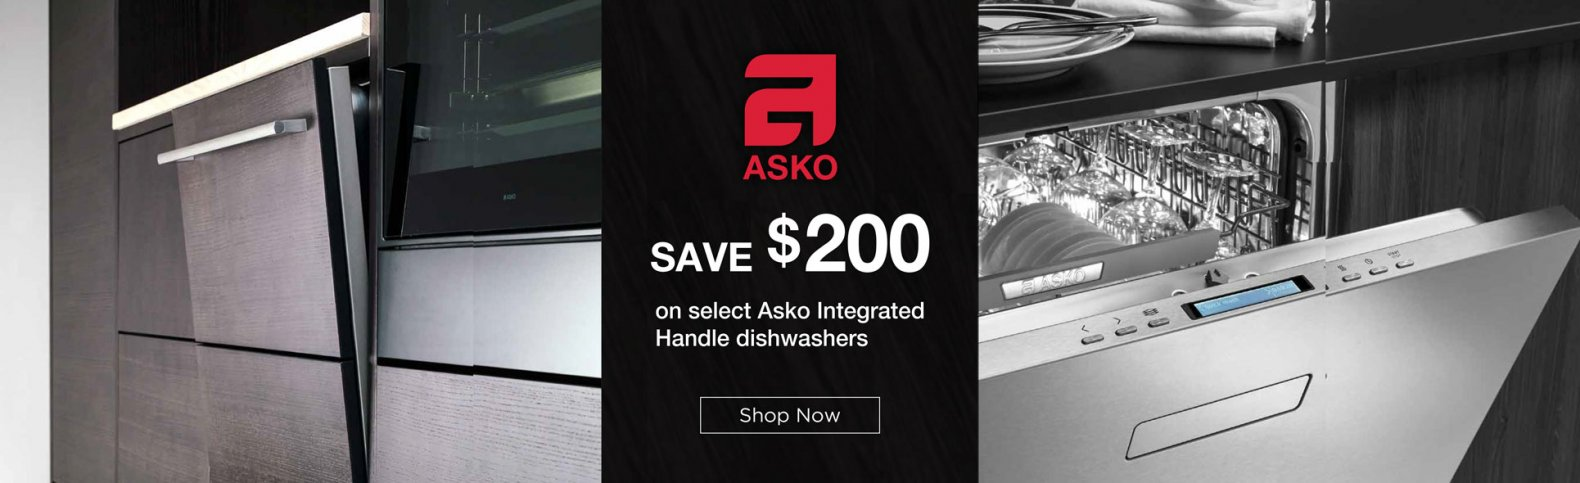 Save $200 on select Asko dishwashers